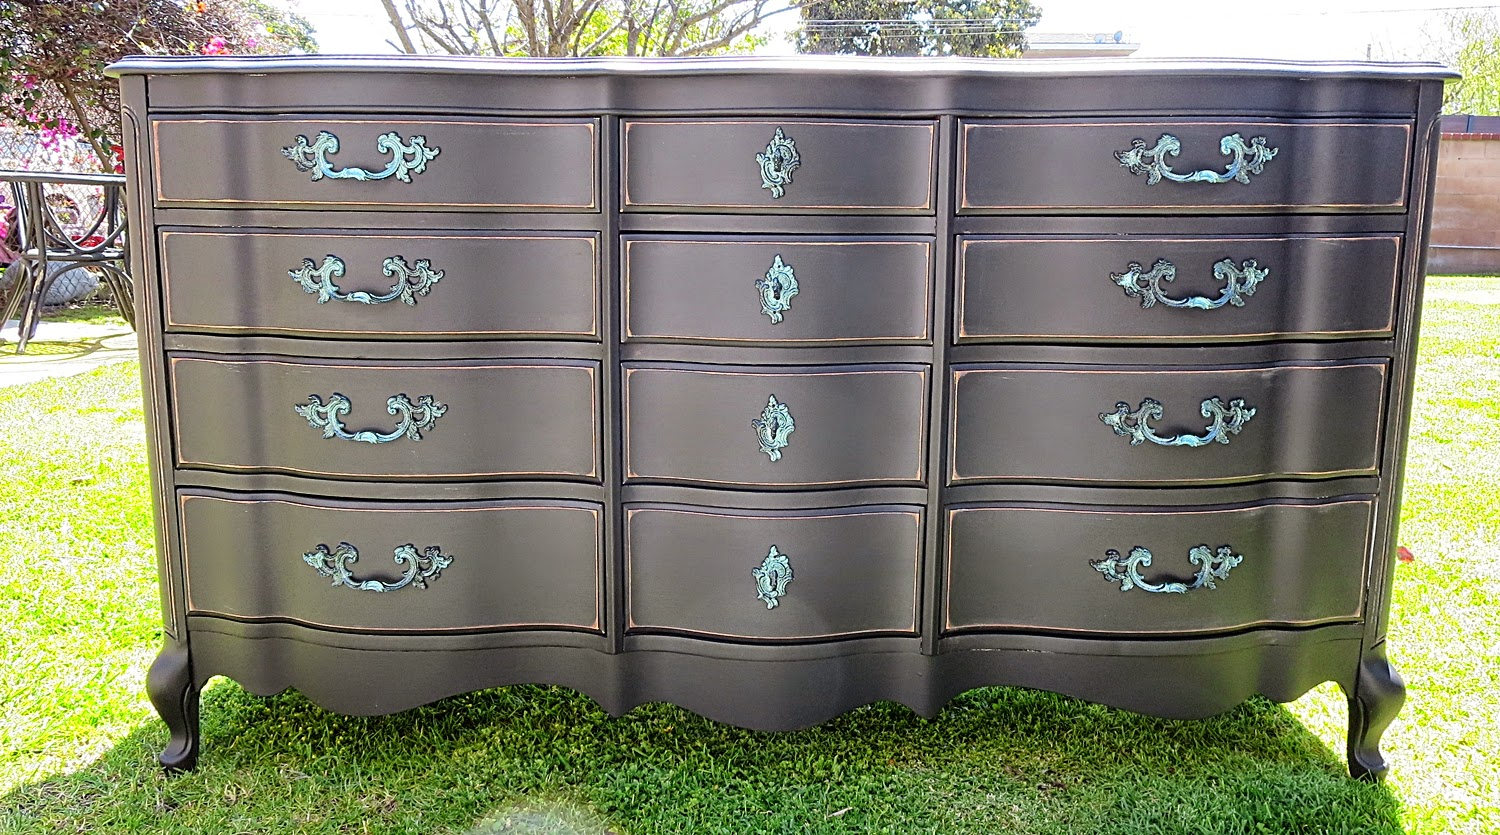 Black shabby chic furniture -  Shabby Chic French Provincial Dresser 12 Drawers Onix Black Glitter Sold 520